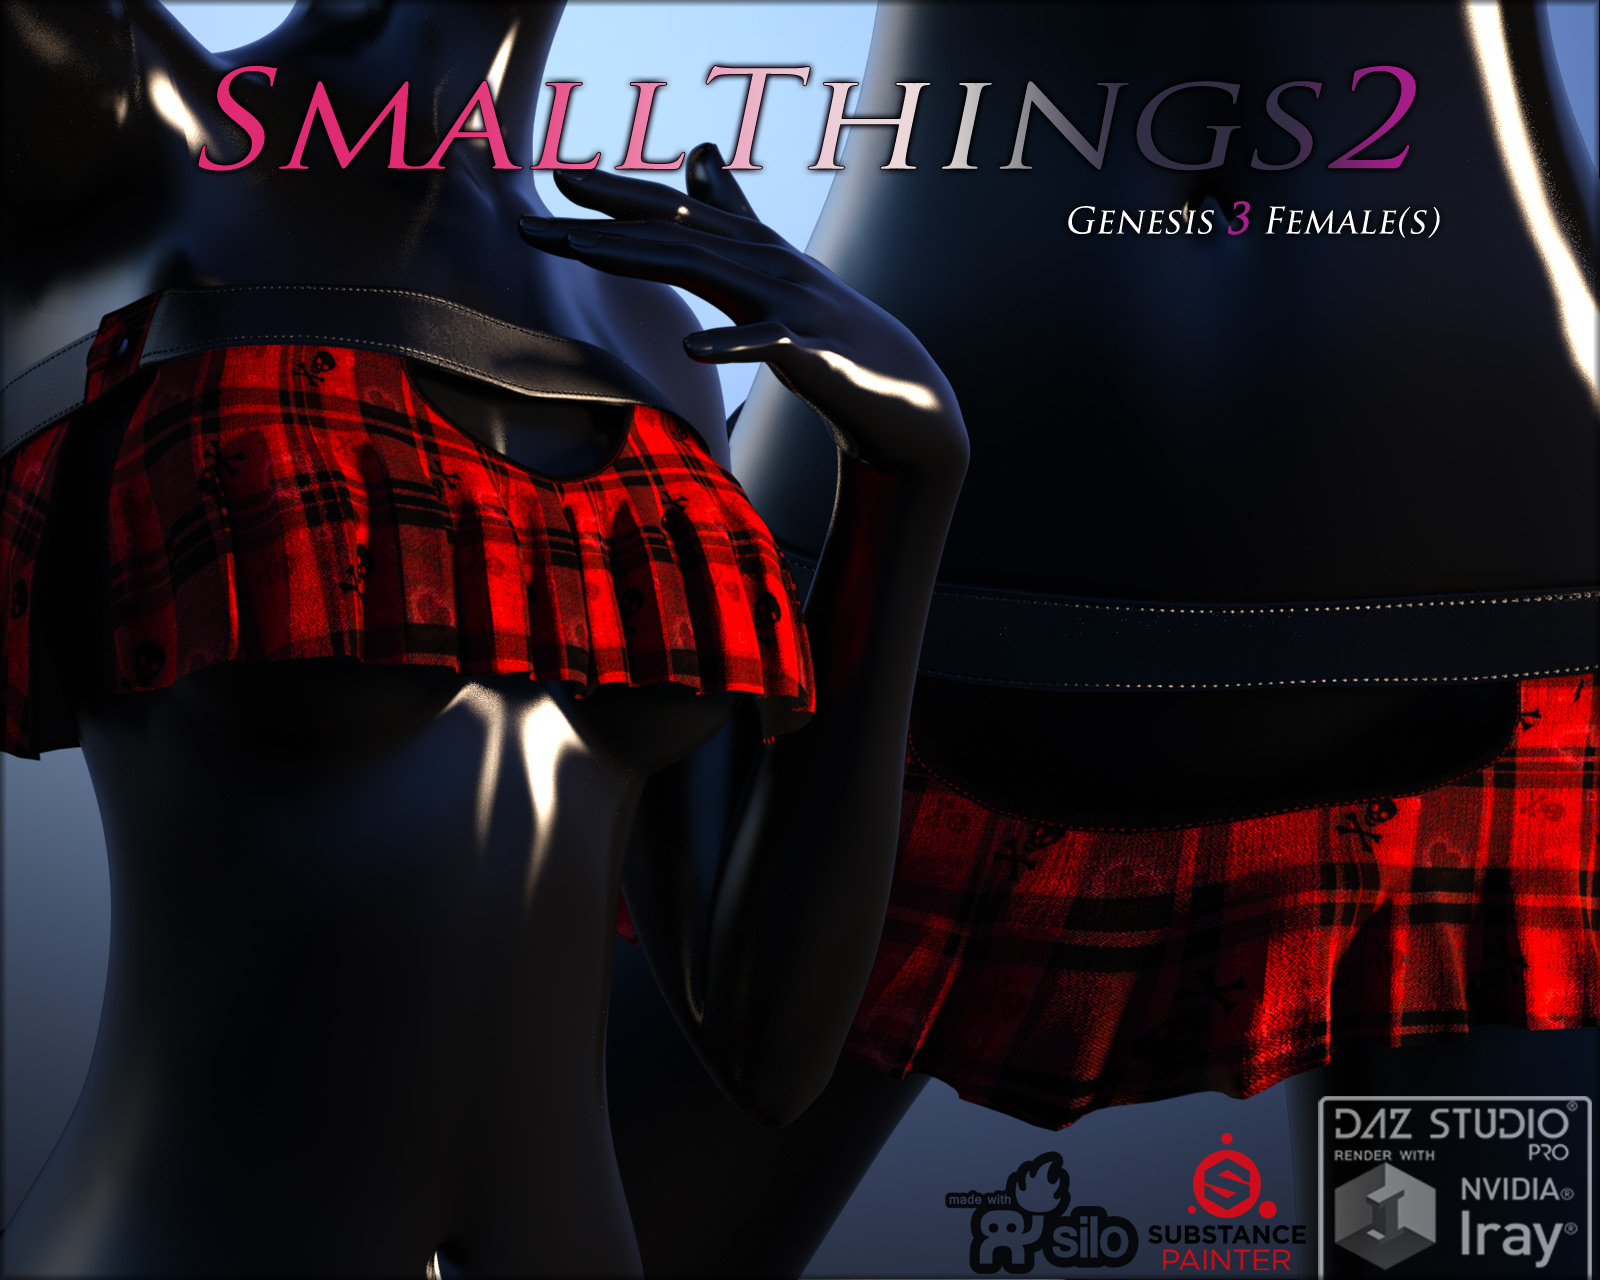 SmallThings 2 for Genesis 3 Females